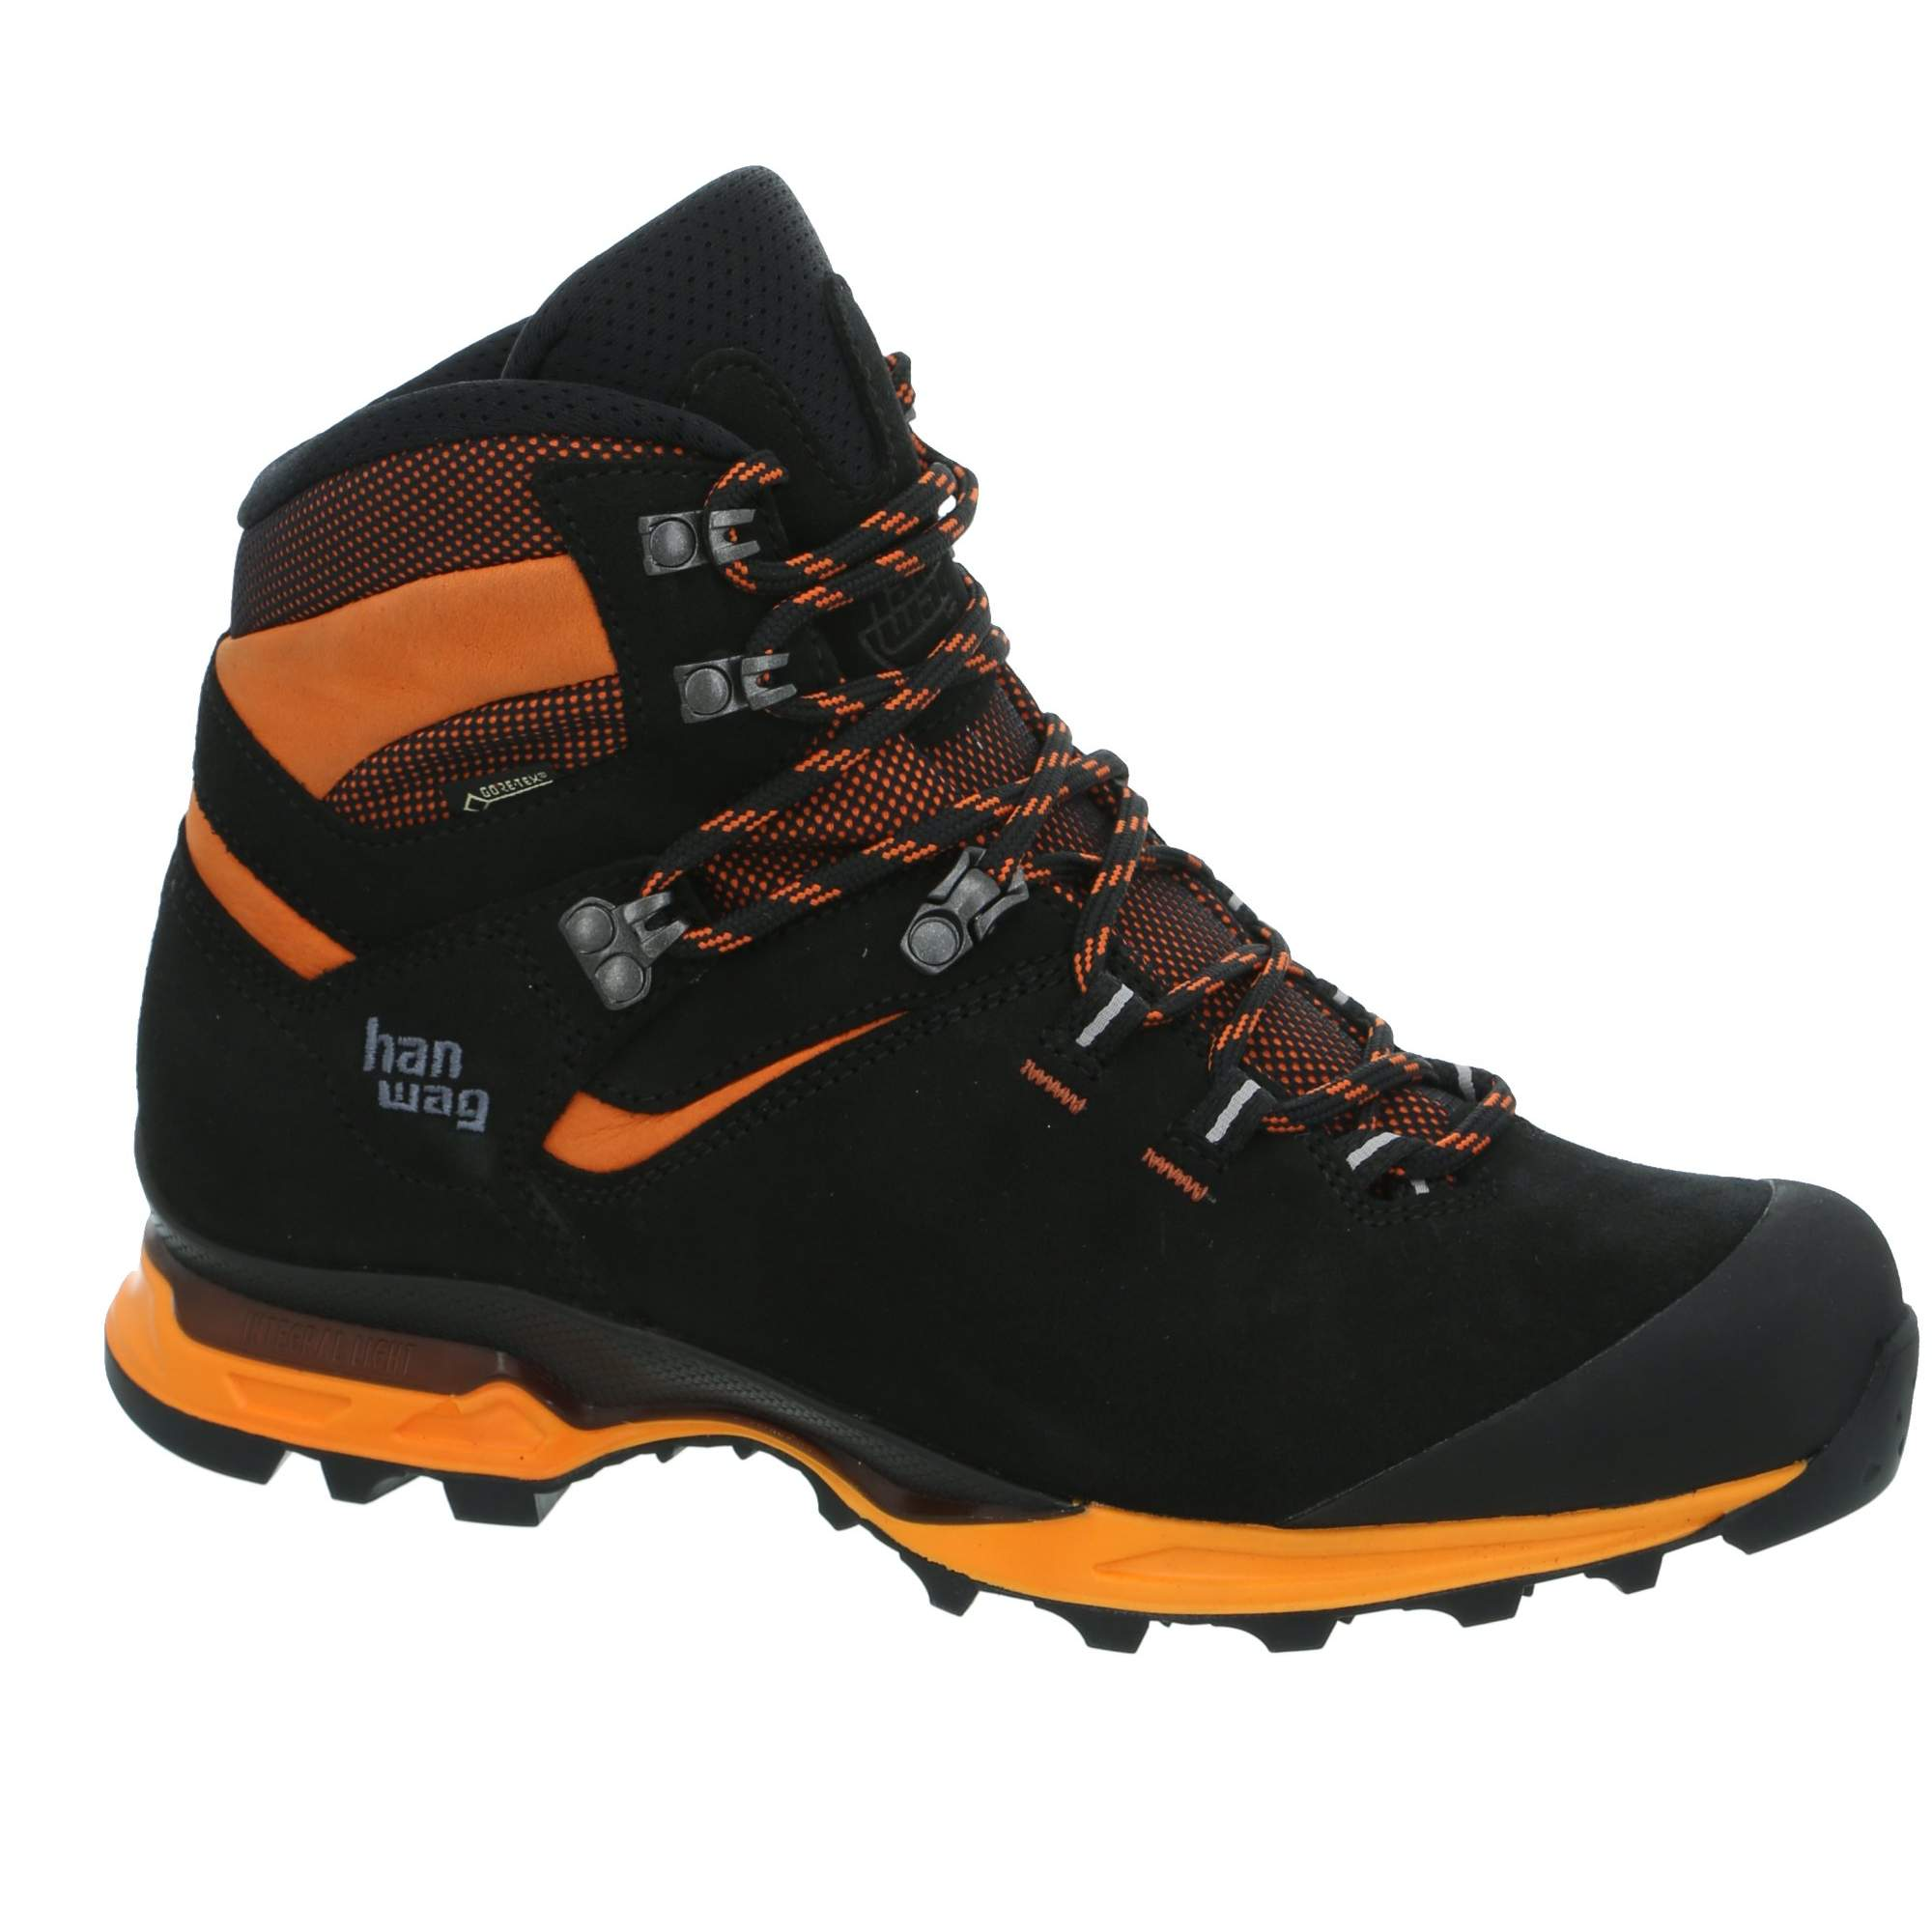 hanwag tatra light gtx - black/orange